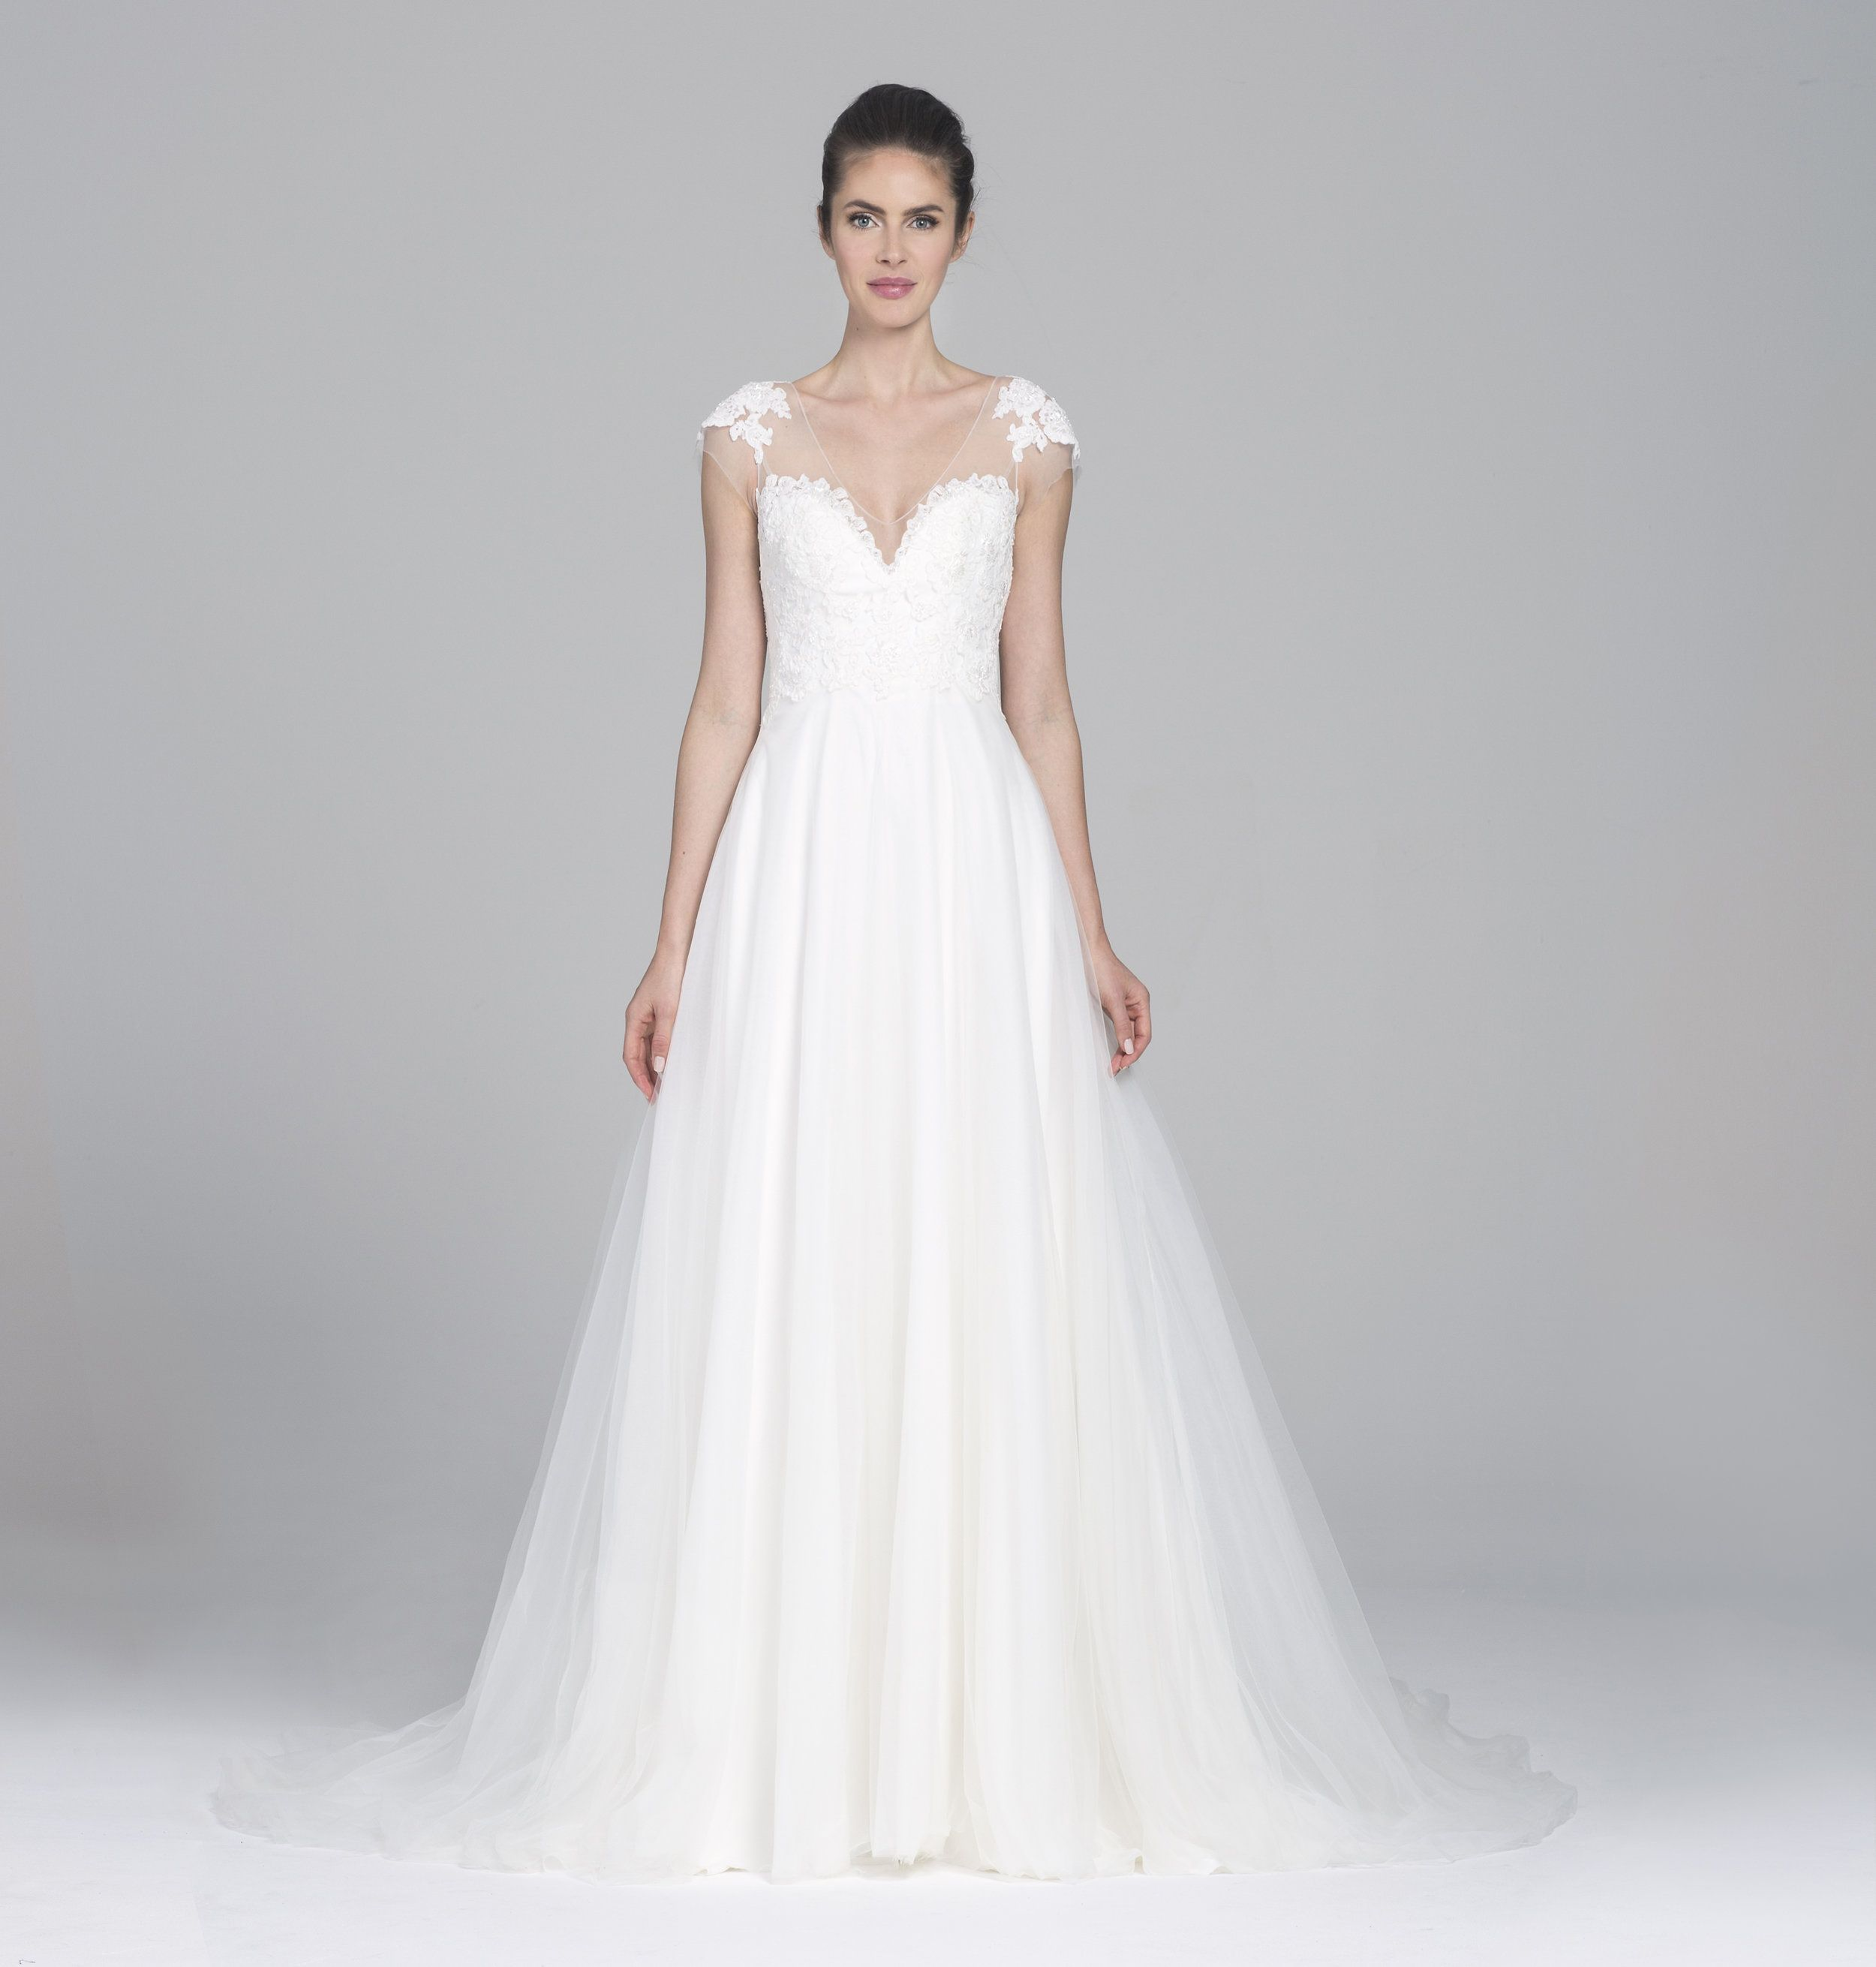 Wedding dress with bow on back  Soft tulle Aline gown with beaded illusion cap sleeve and low